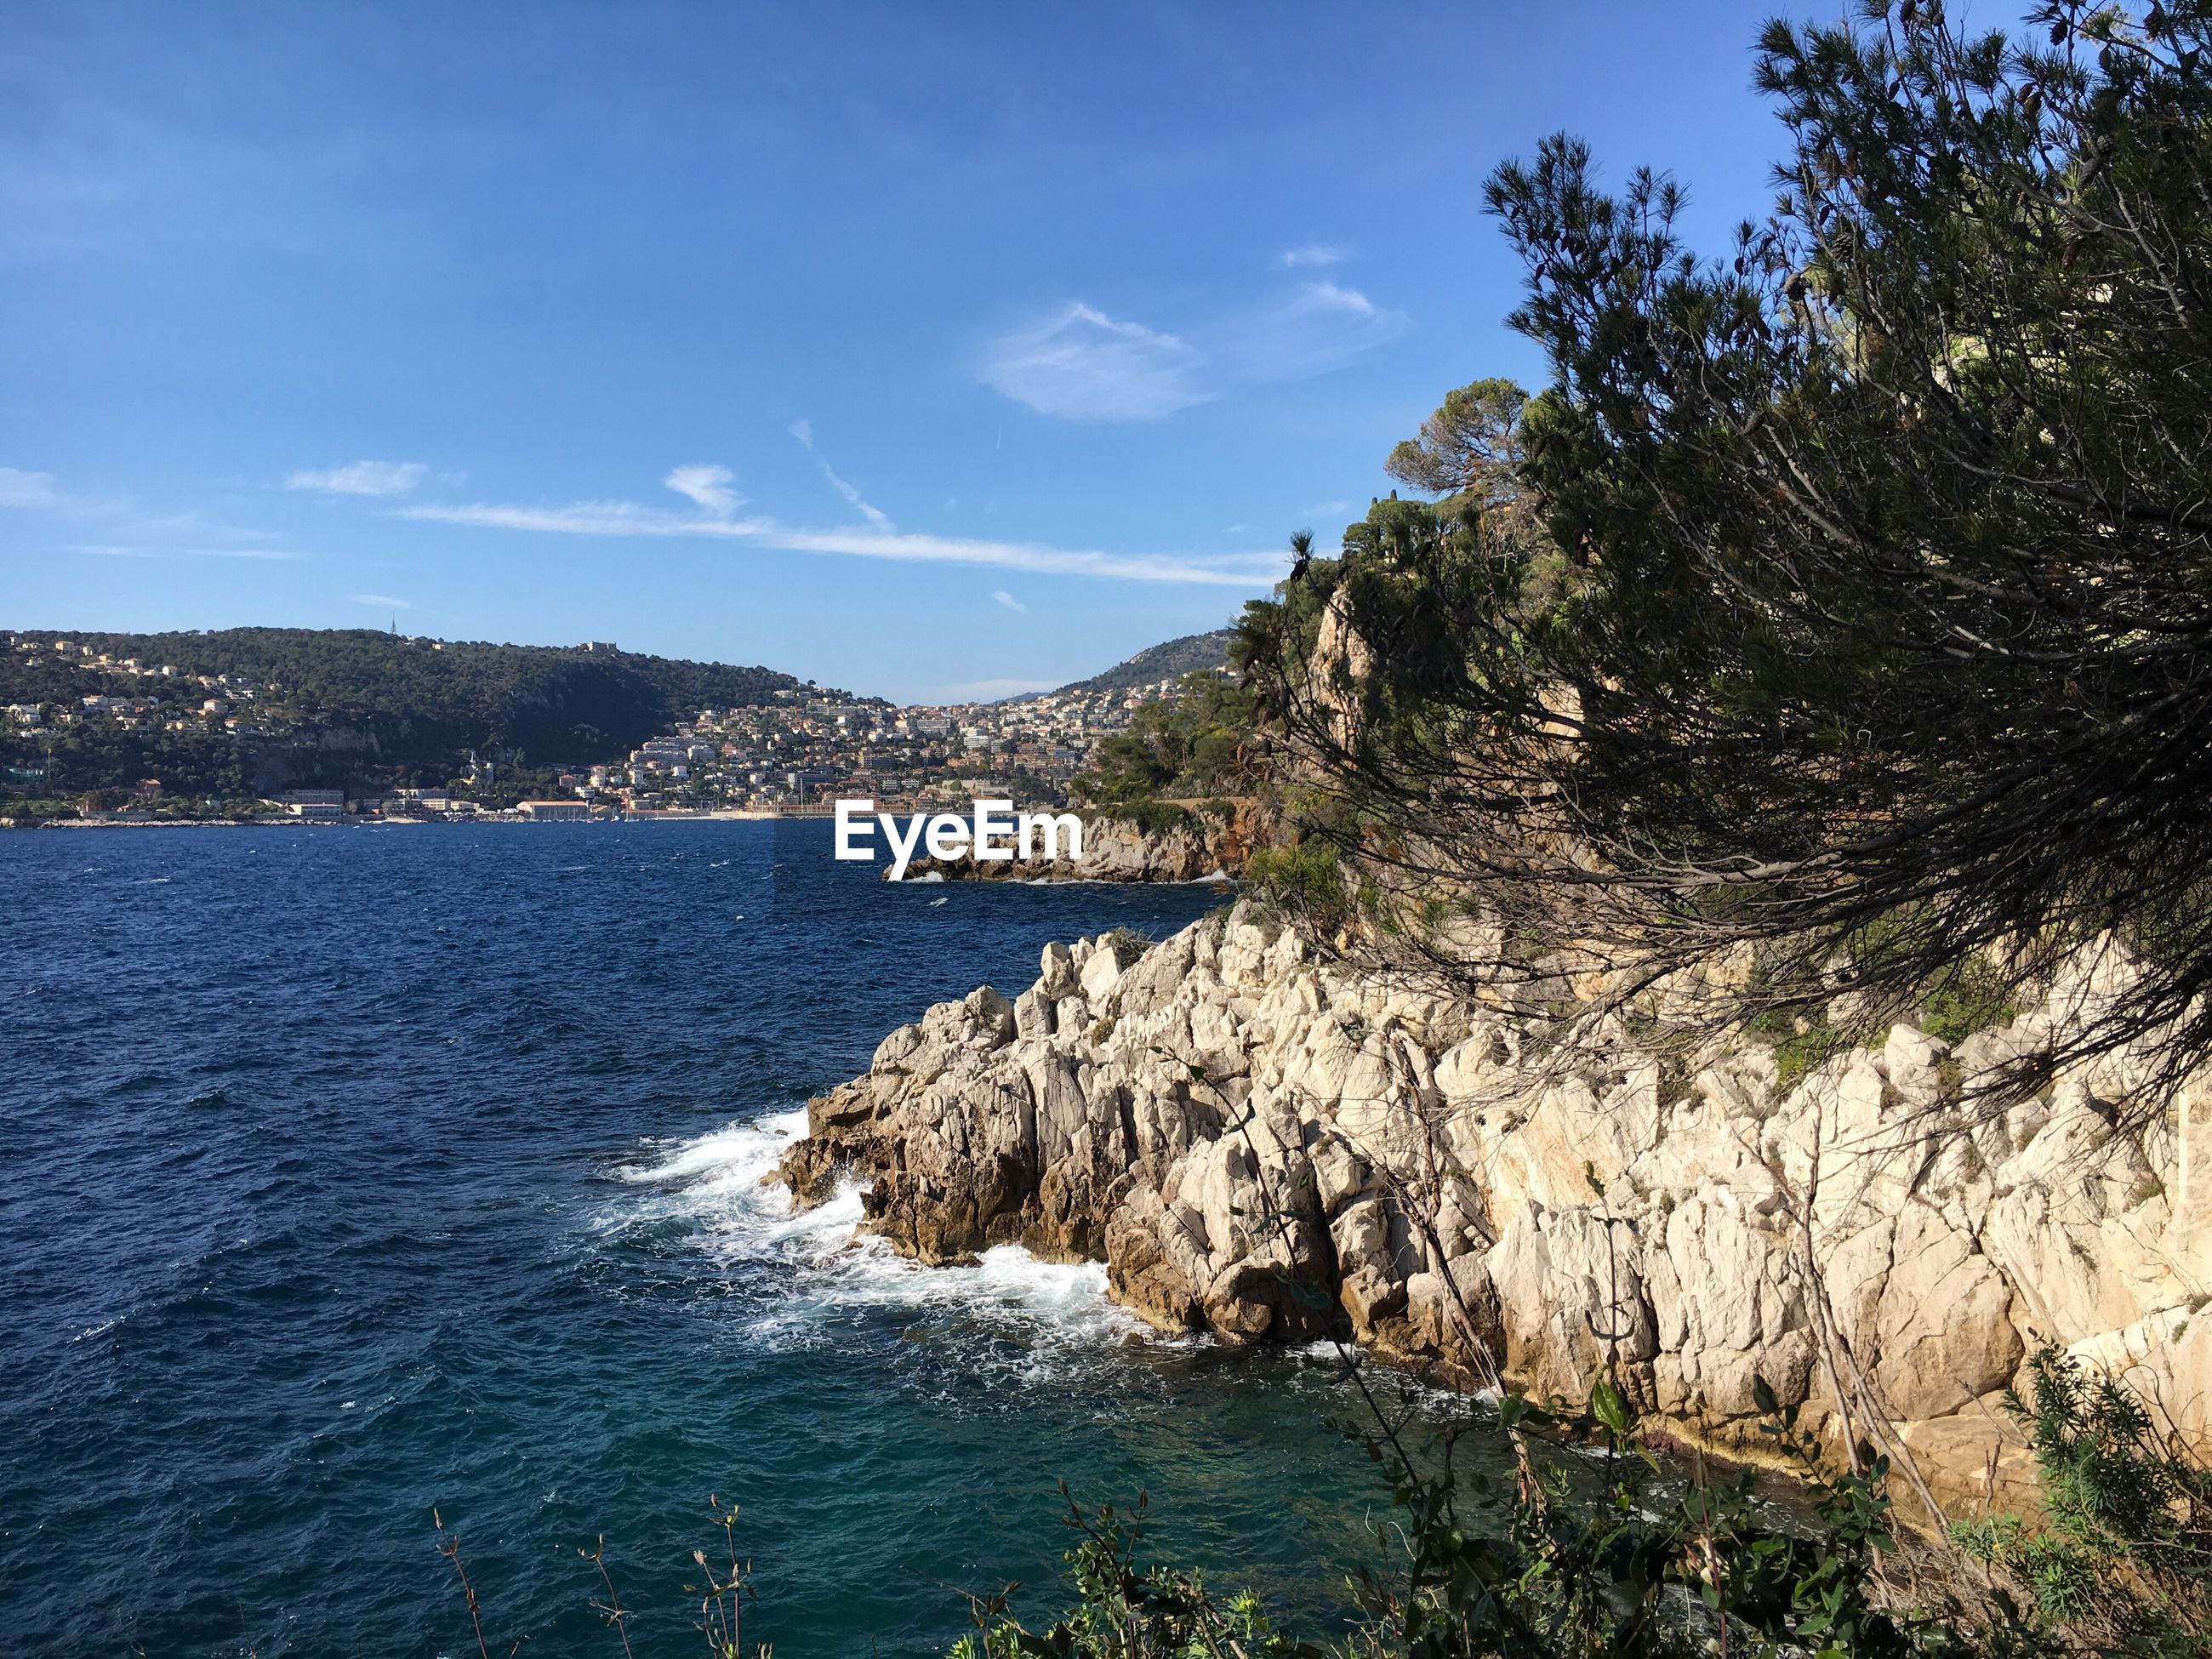 SCENIC VIEW OF SEA AND ROCK AGAINST SKY